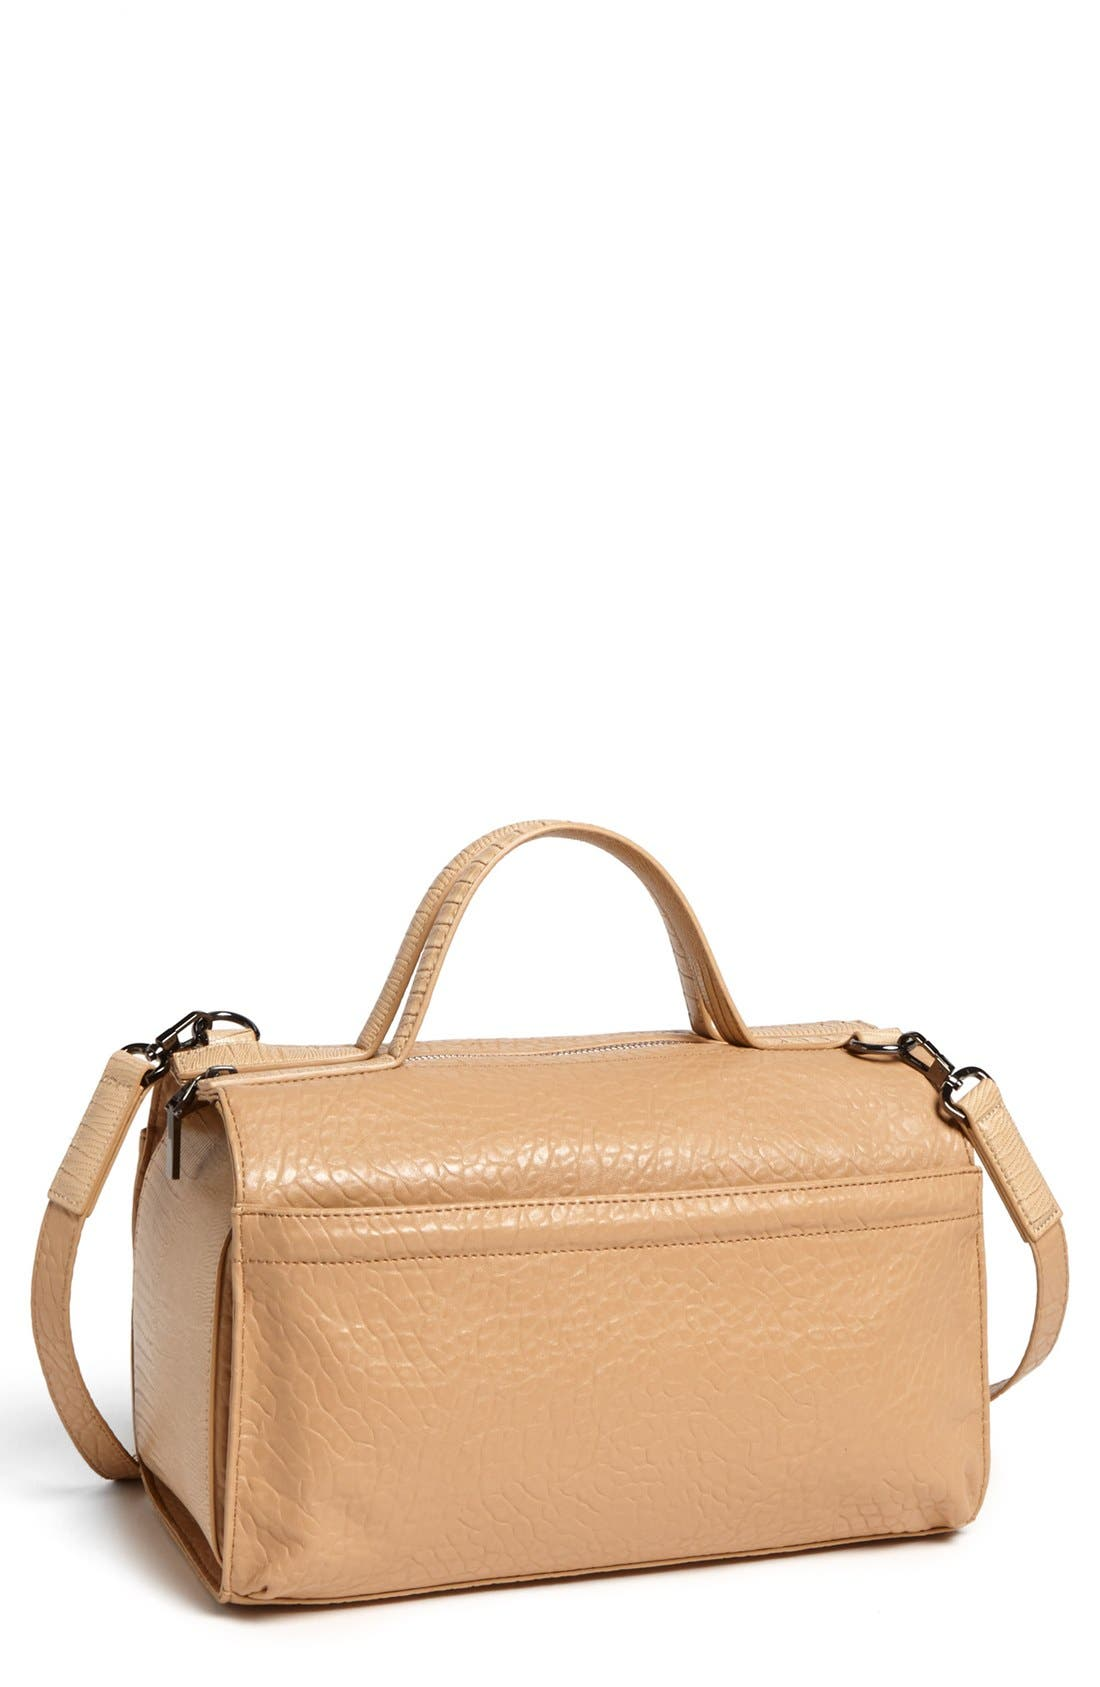 Main Image - French Connection 'Zip Code' Satchel